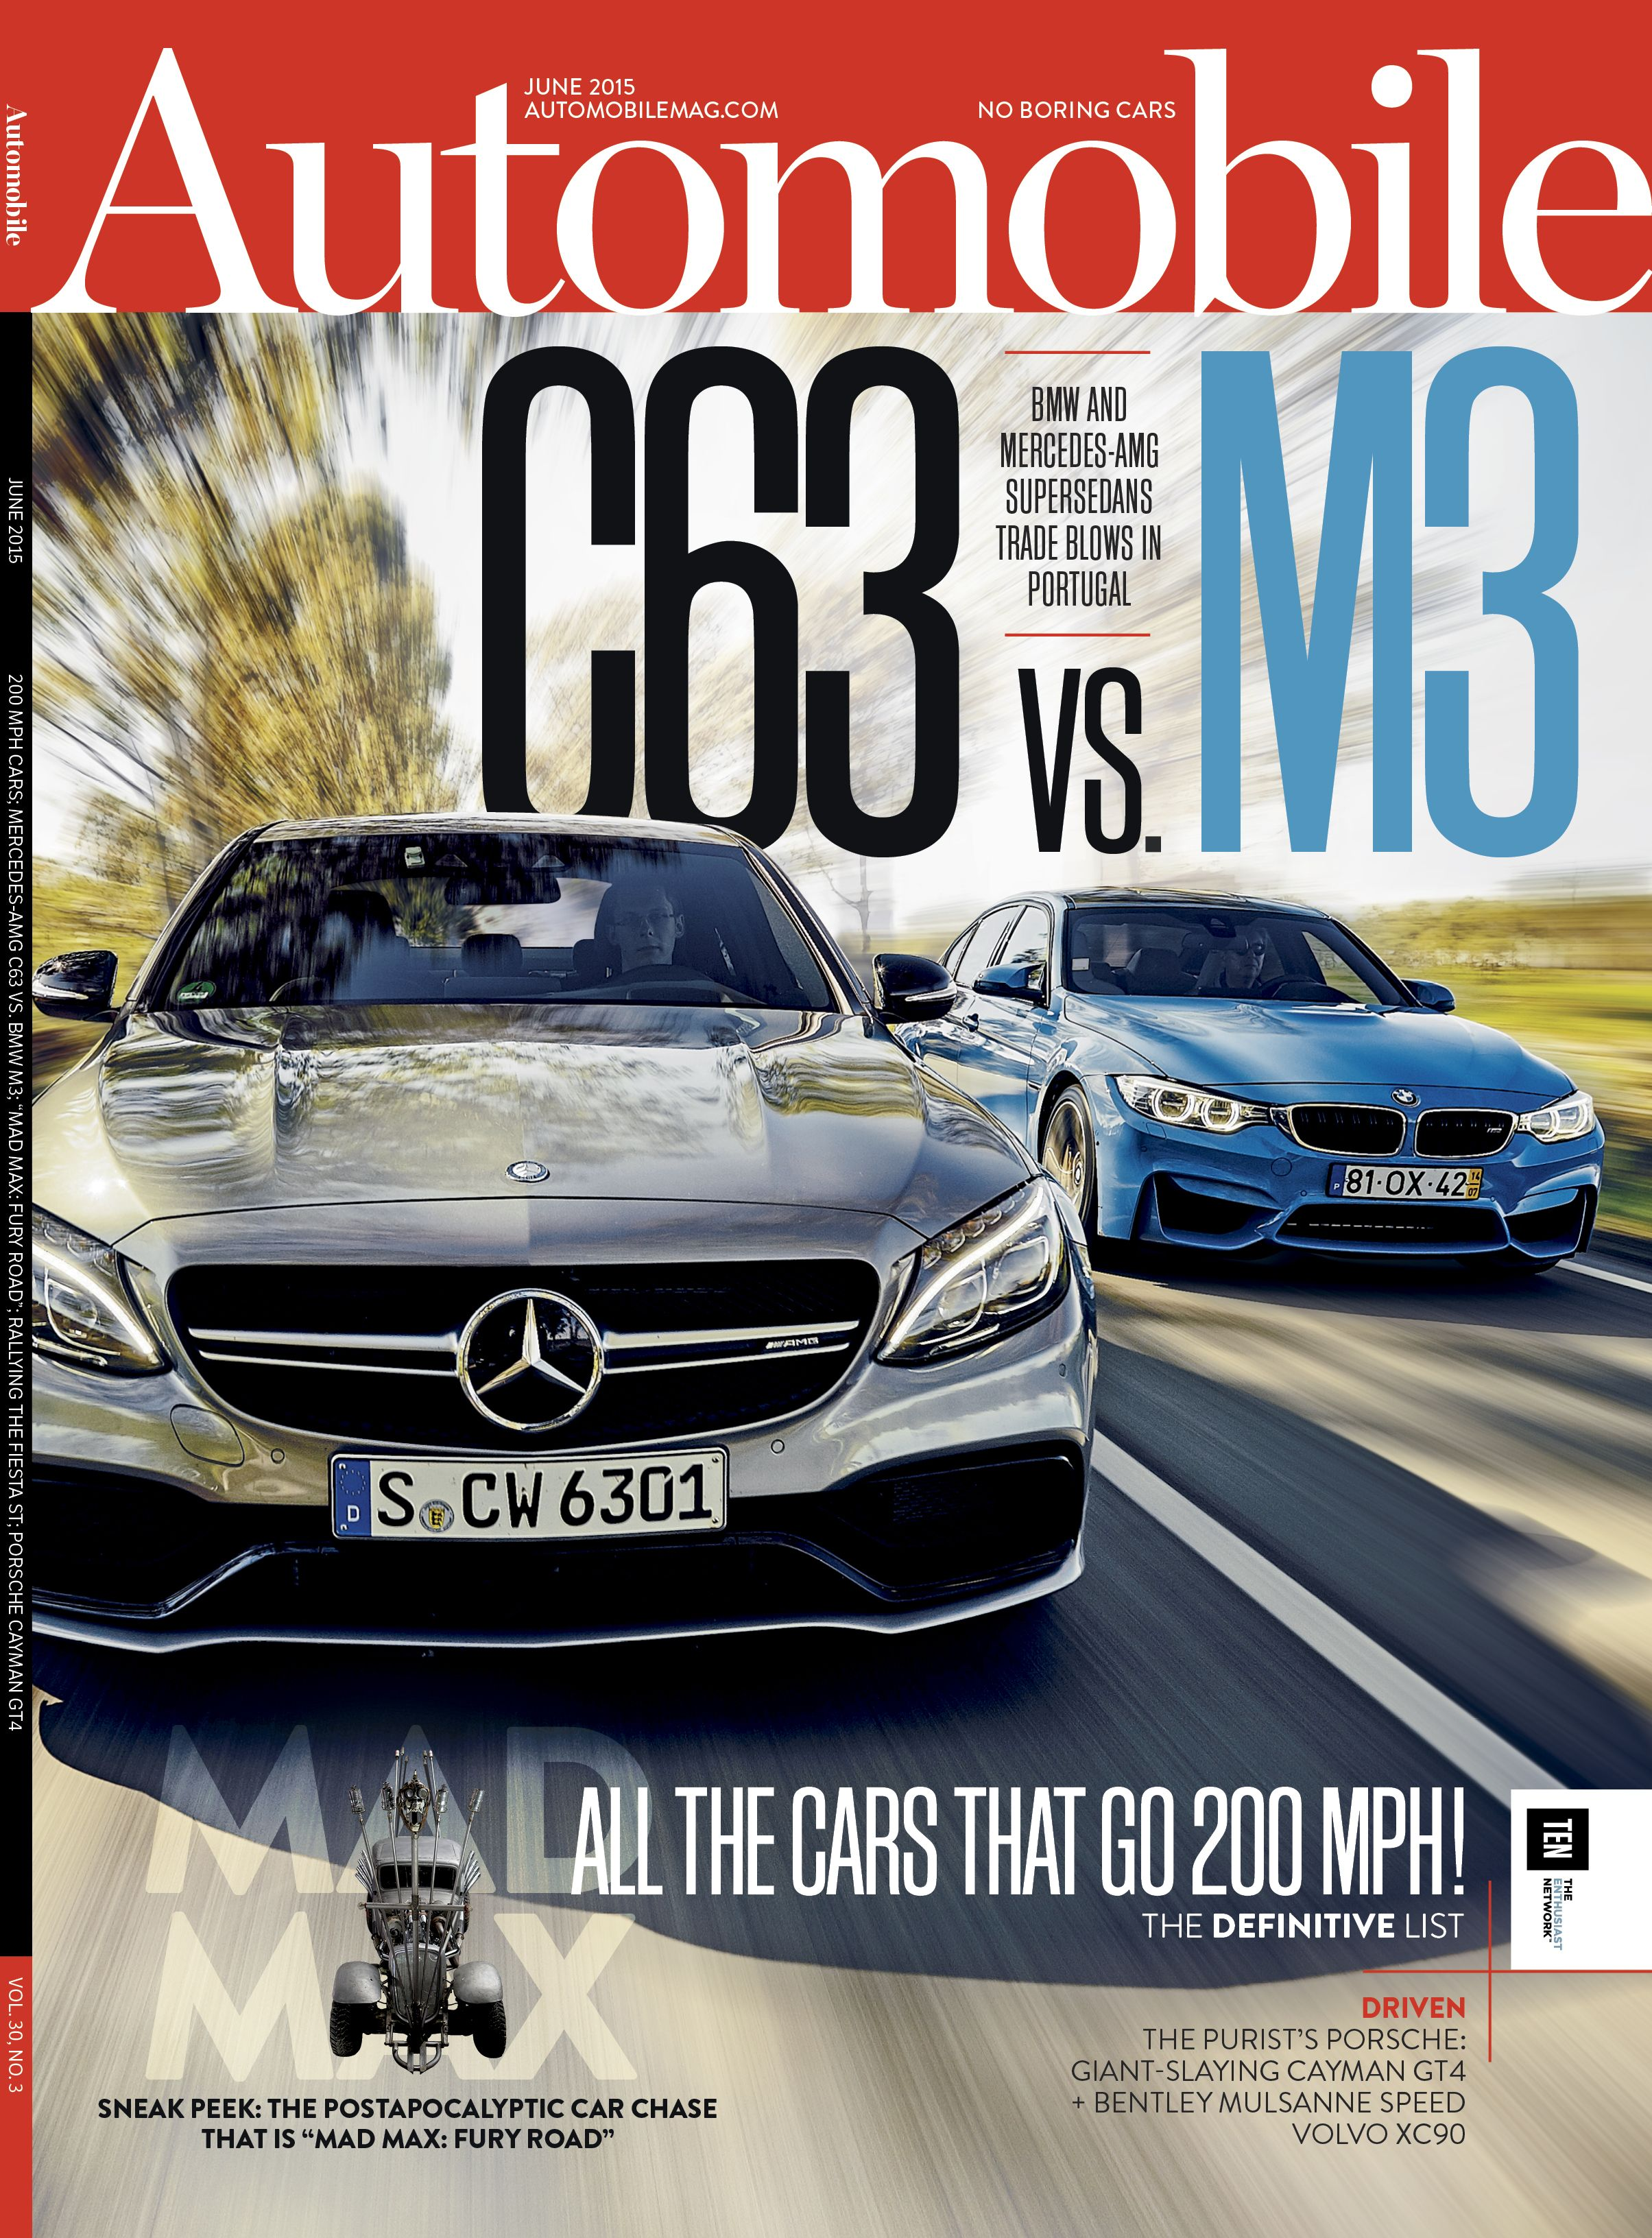 June 2015 200 mph cars mercedes amg c63 vs bmw m3 mad max fury june 2015 200 mph cars mercedes amg c63 vs bmw m3 fandeluxe Gallery